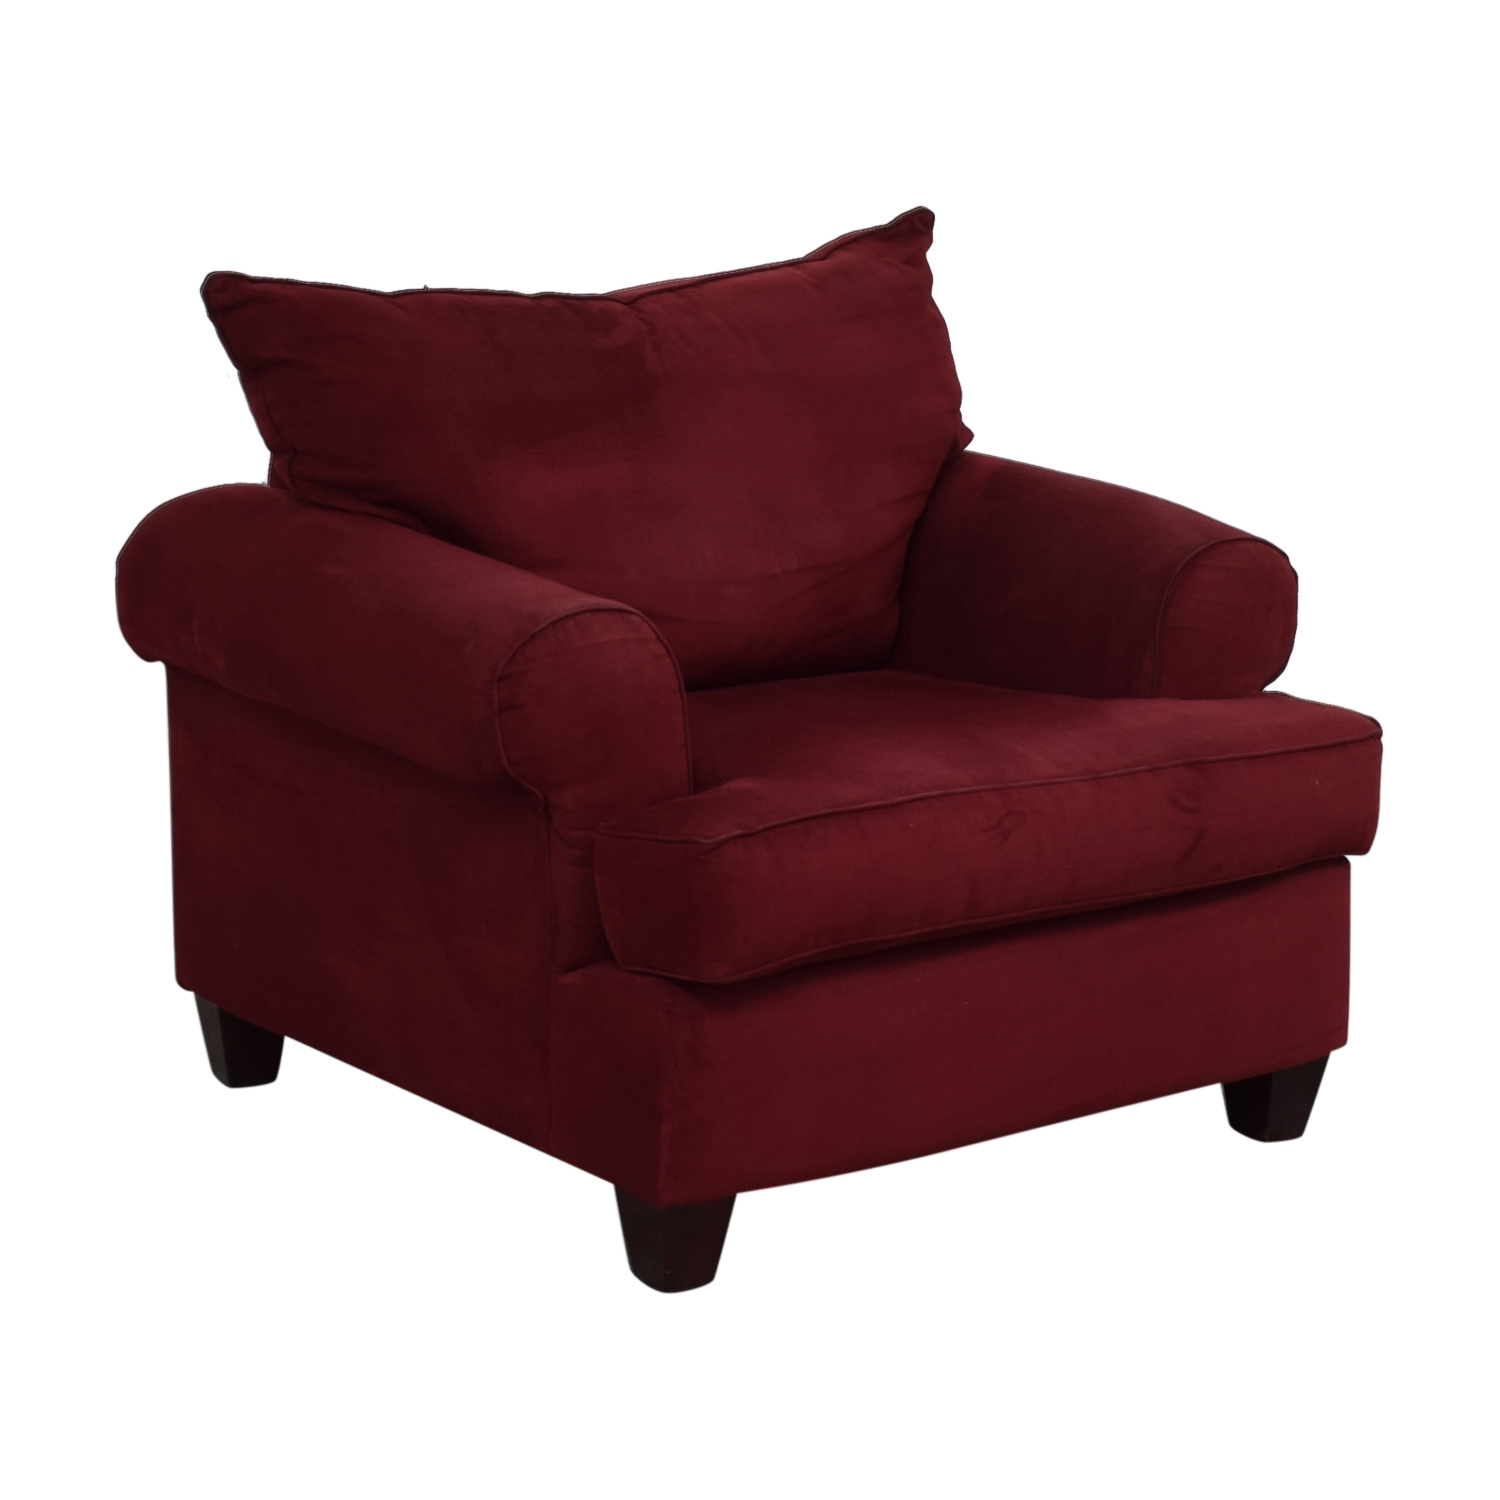 Rooms To Go Rooms To Go Emsworth Scarlet Chair for sale